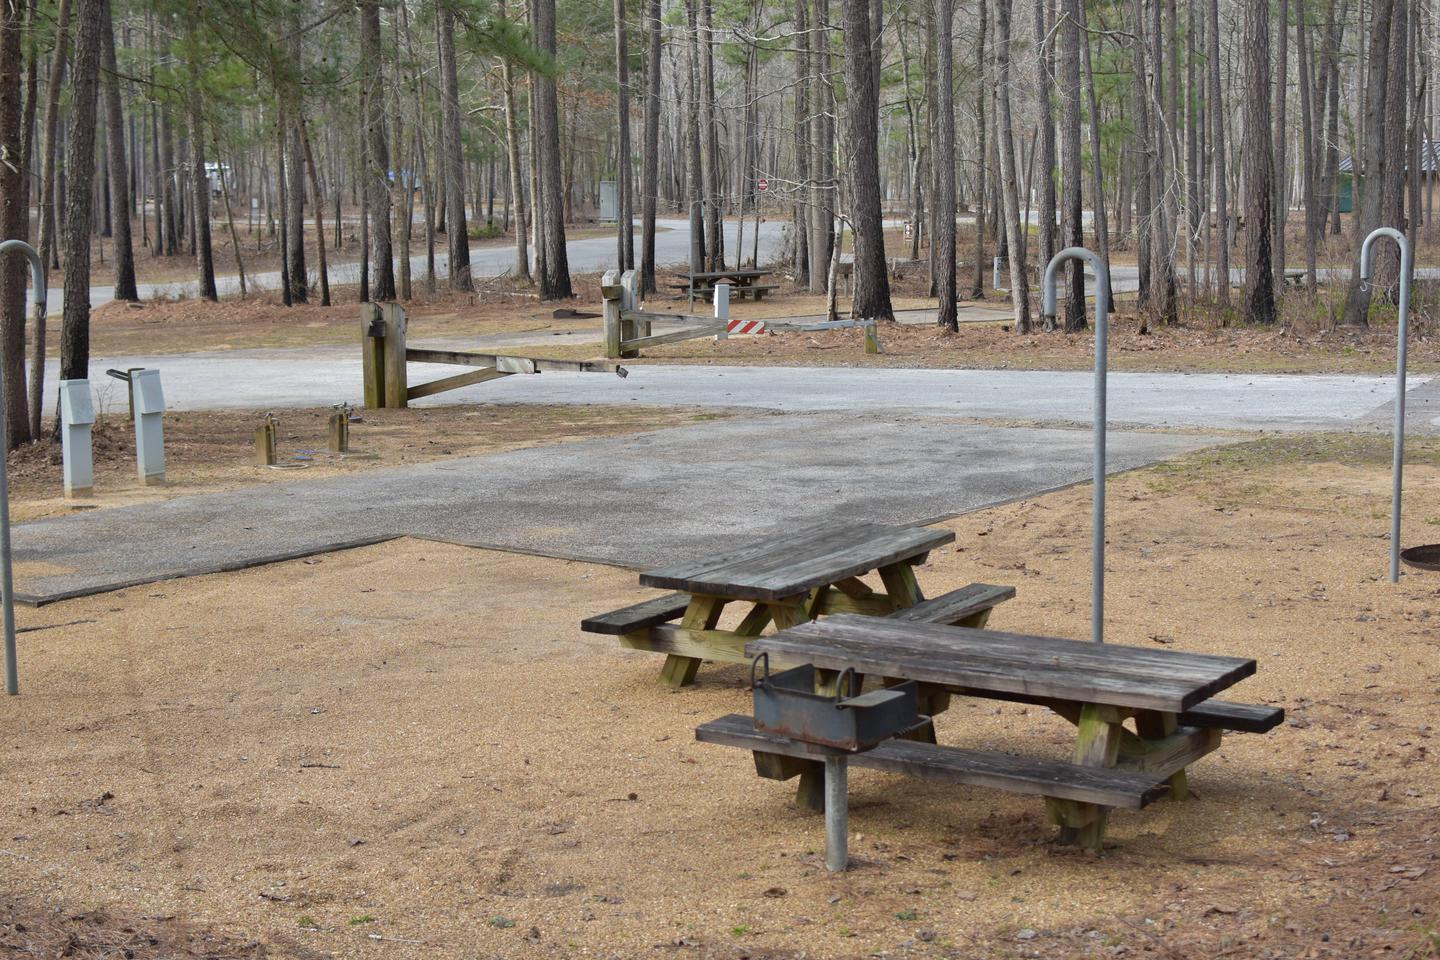 Fawn Site 62-3Fawn Site 62, March 1, 2020